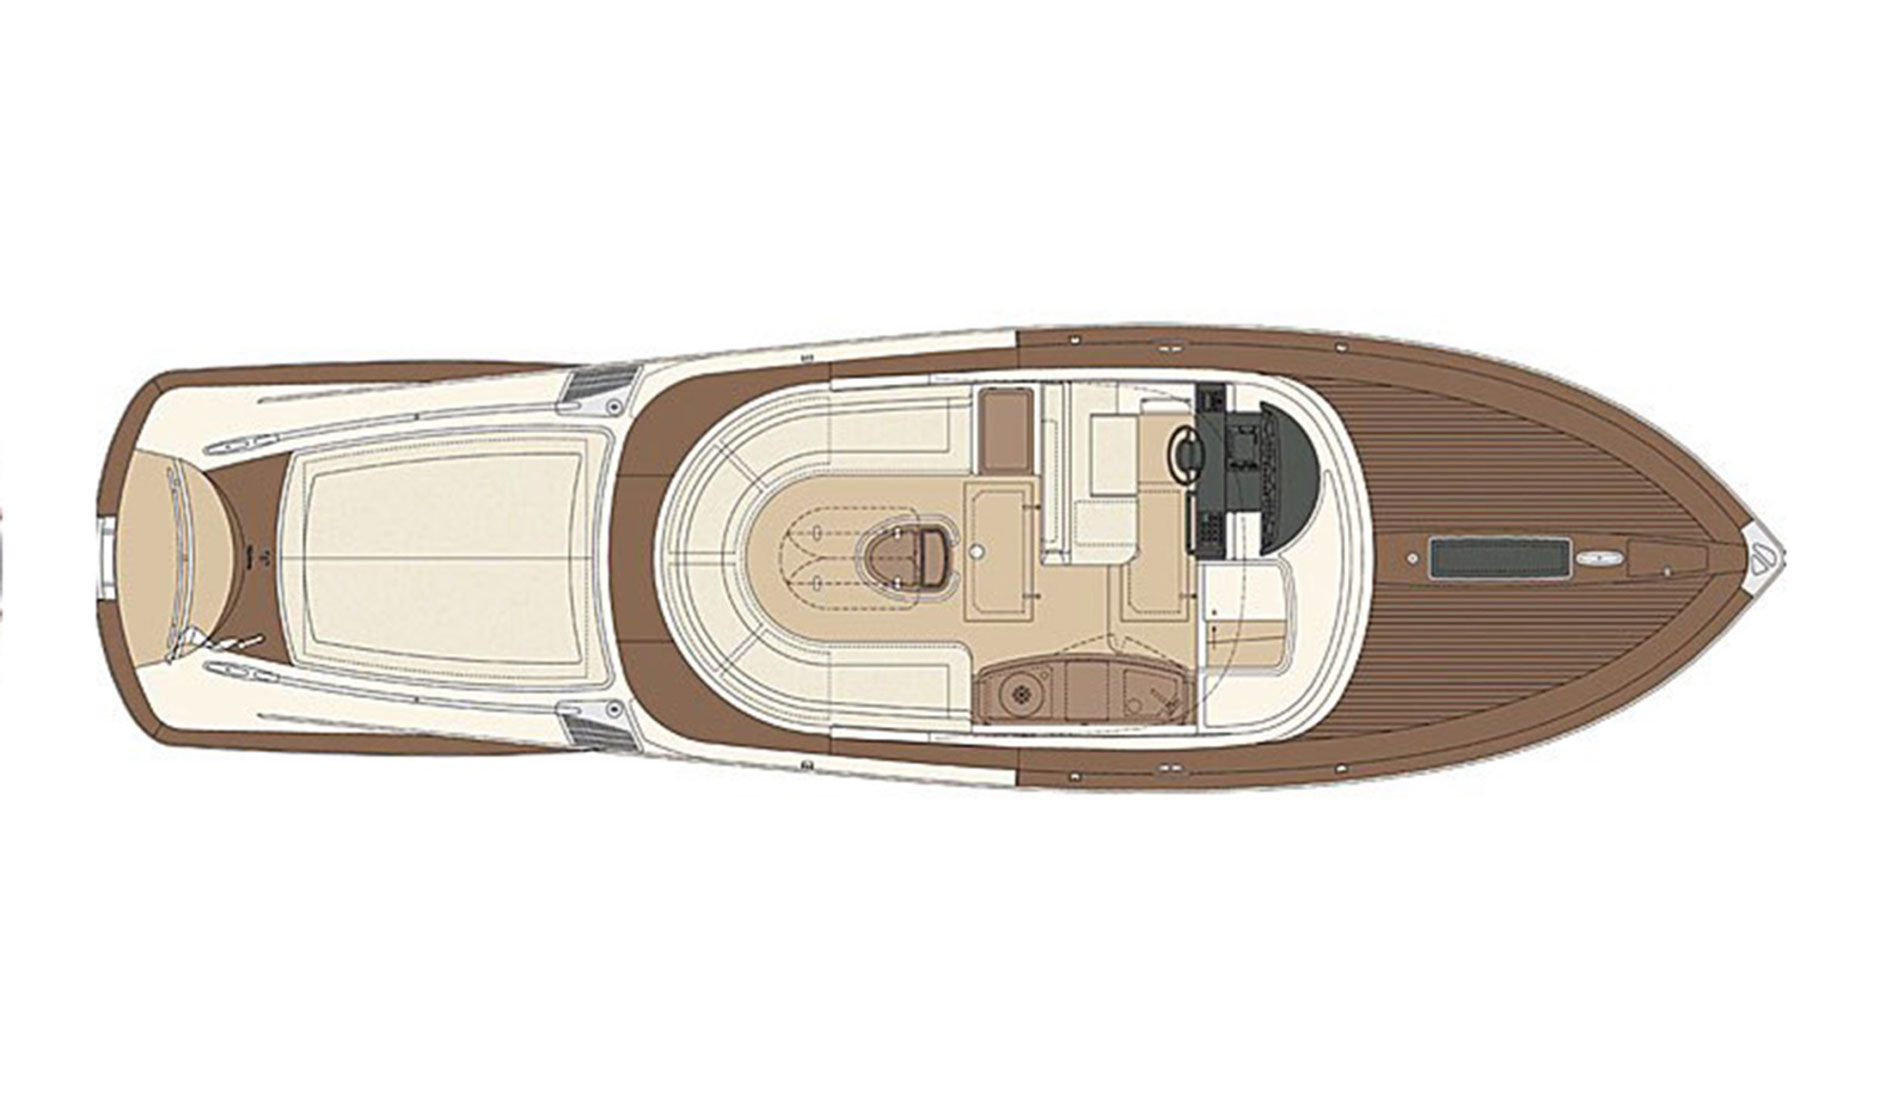 RIVA AQUARIVA SUPER 2019 год Фото  20